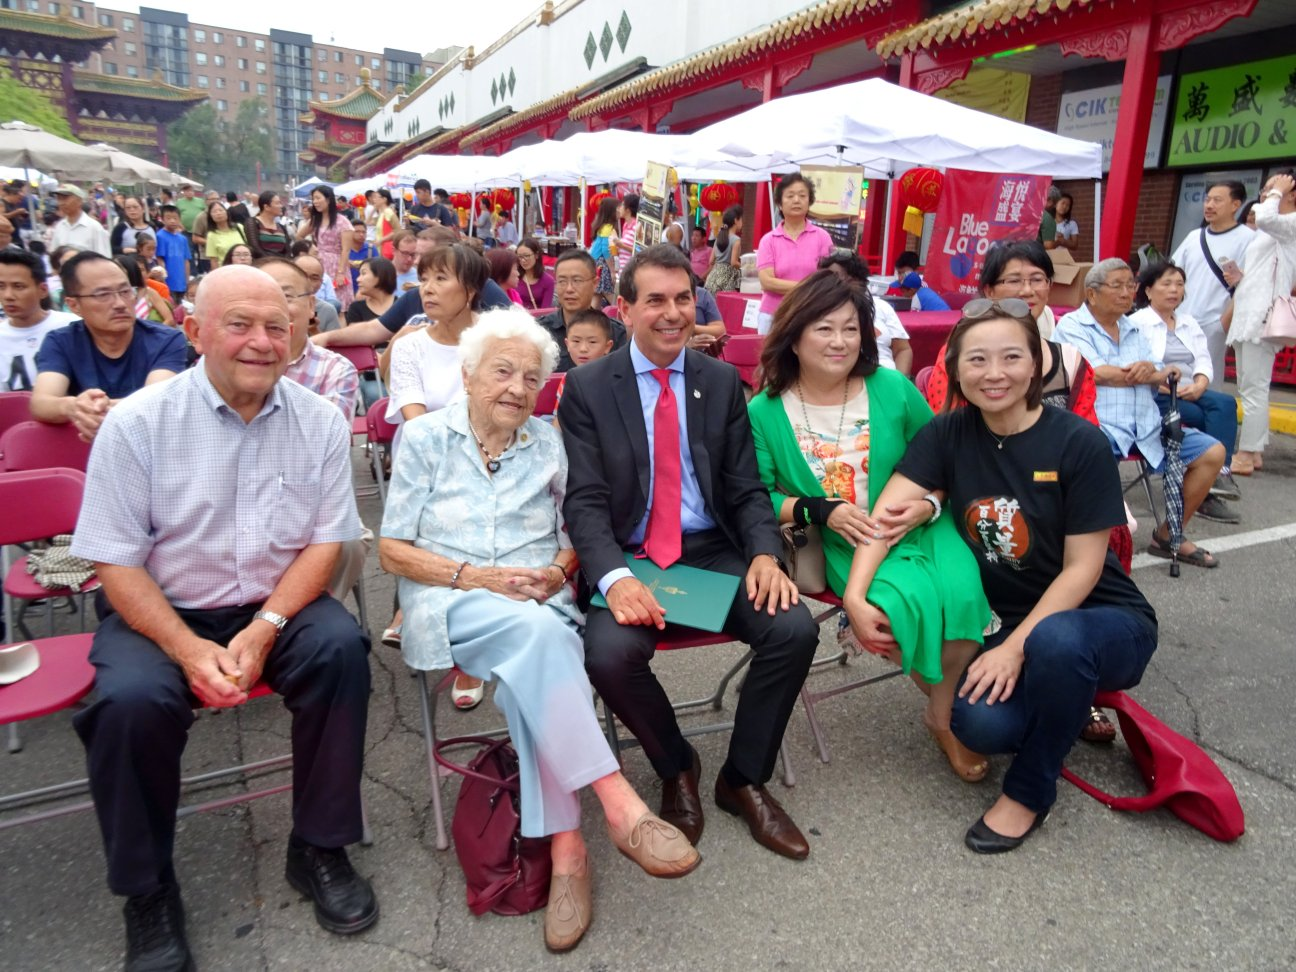 Ron Starr, Hazel McCallion, Peter Fonseca, Winnie Fung and Event Organizer at Chinese Mid-Autumn Festival at Mississauga Chinese Centre 10 September 2016 photo by I Lee